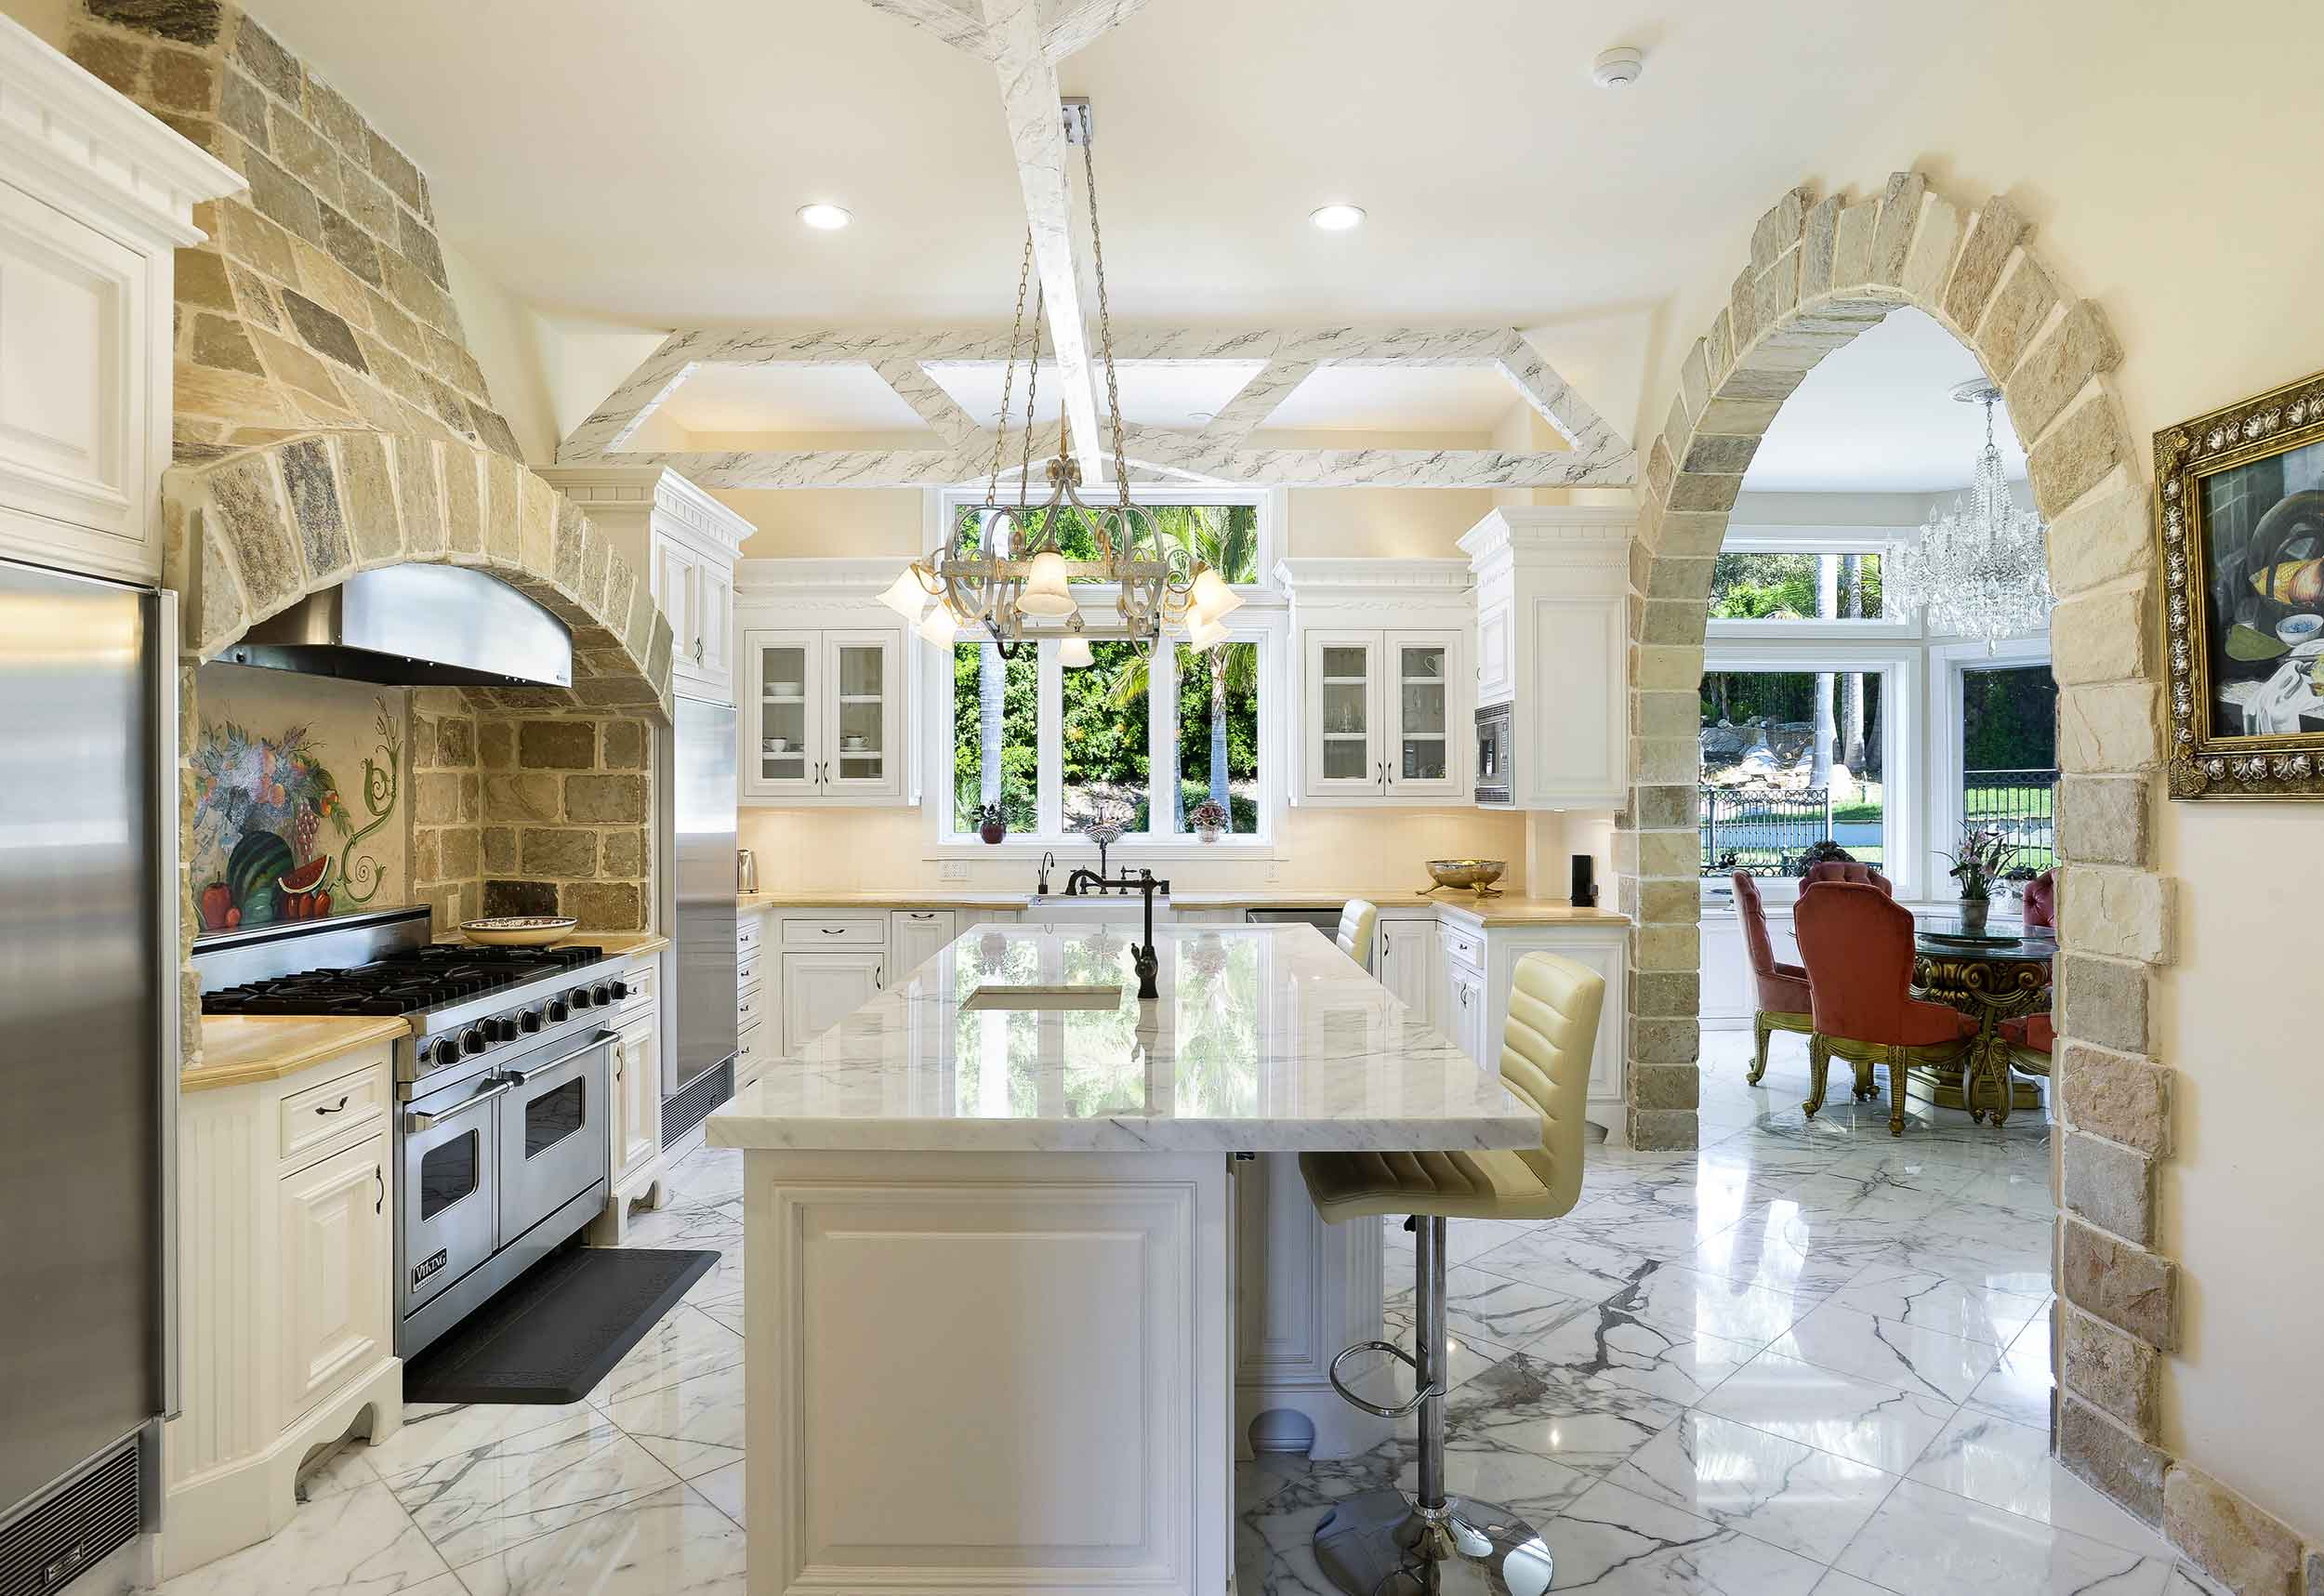 Serving the breakfast nook is a fully equipped chef's kitchen, complete with center island/breakfast bar, sandstone walls, and white marble floors.